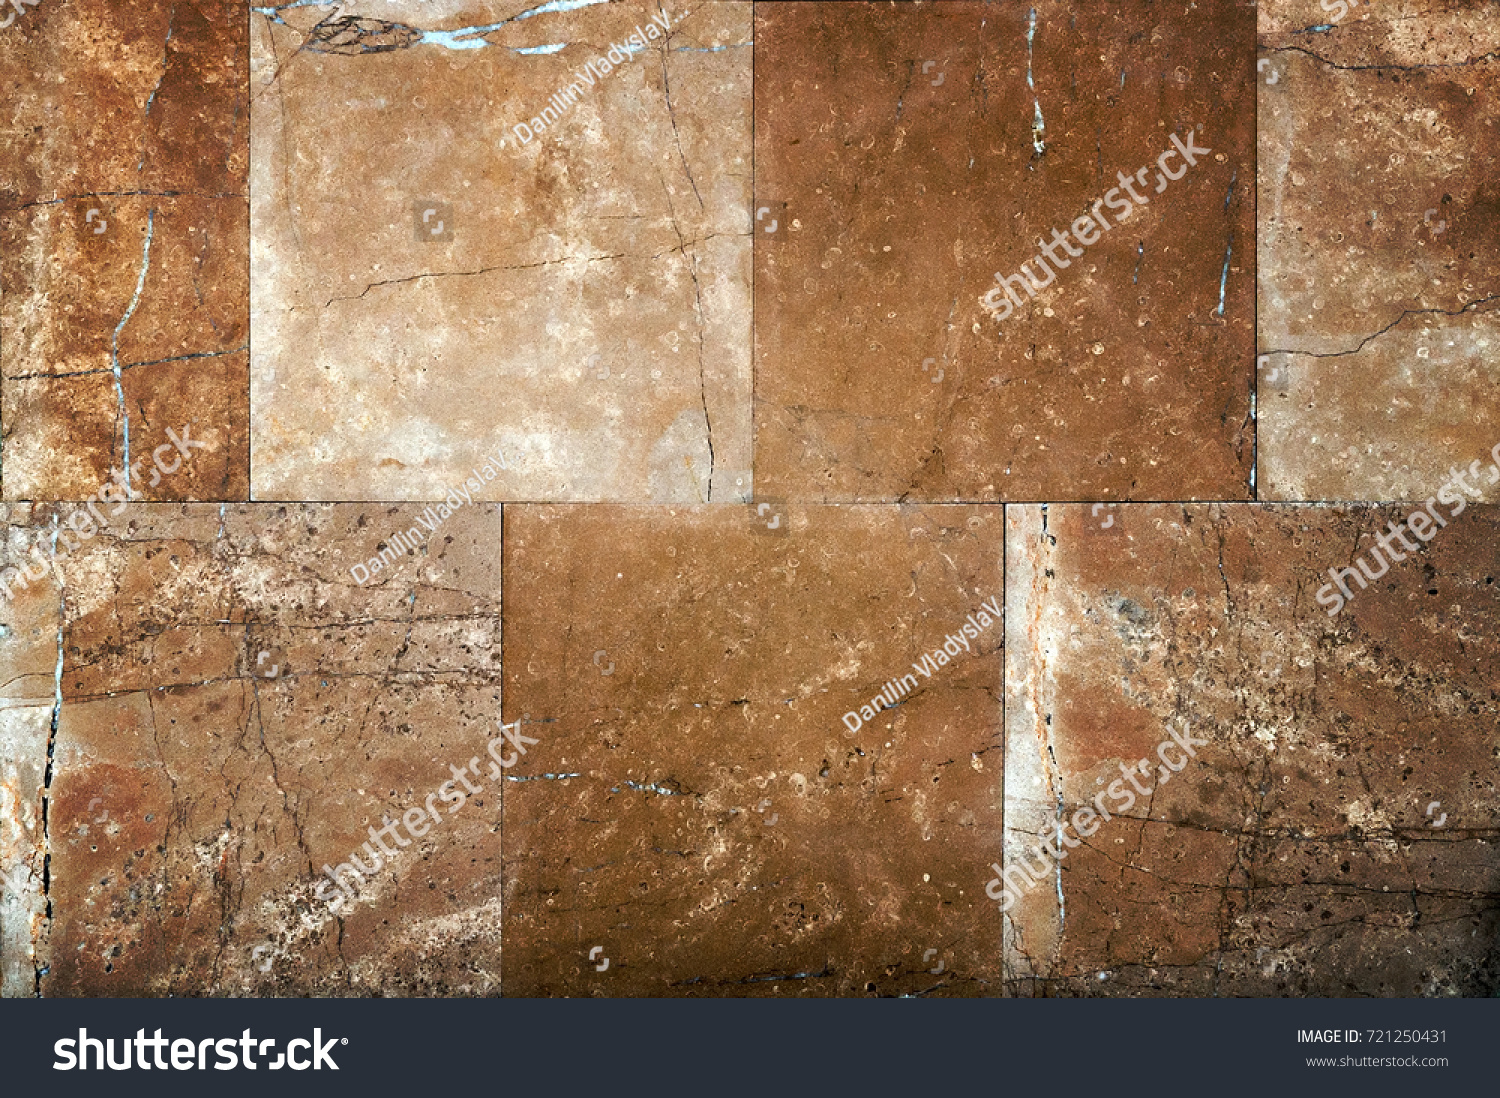 Marble tile floor background stone surface stock photo 721250431 marble tile floor background stone surface design dailygadgetfo Image collections